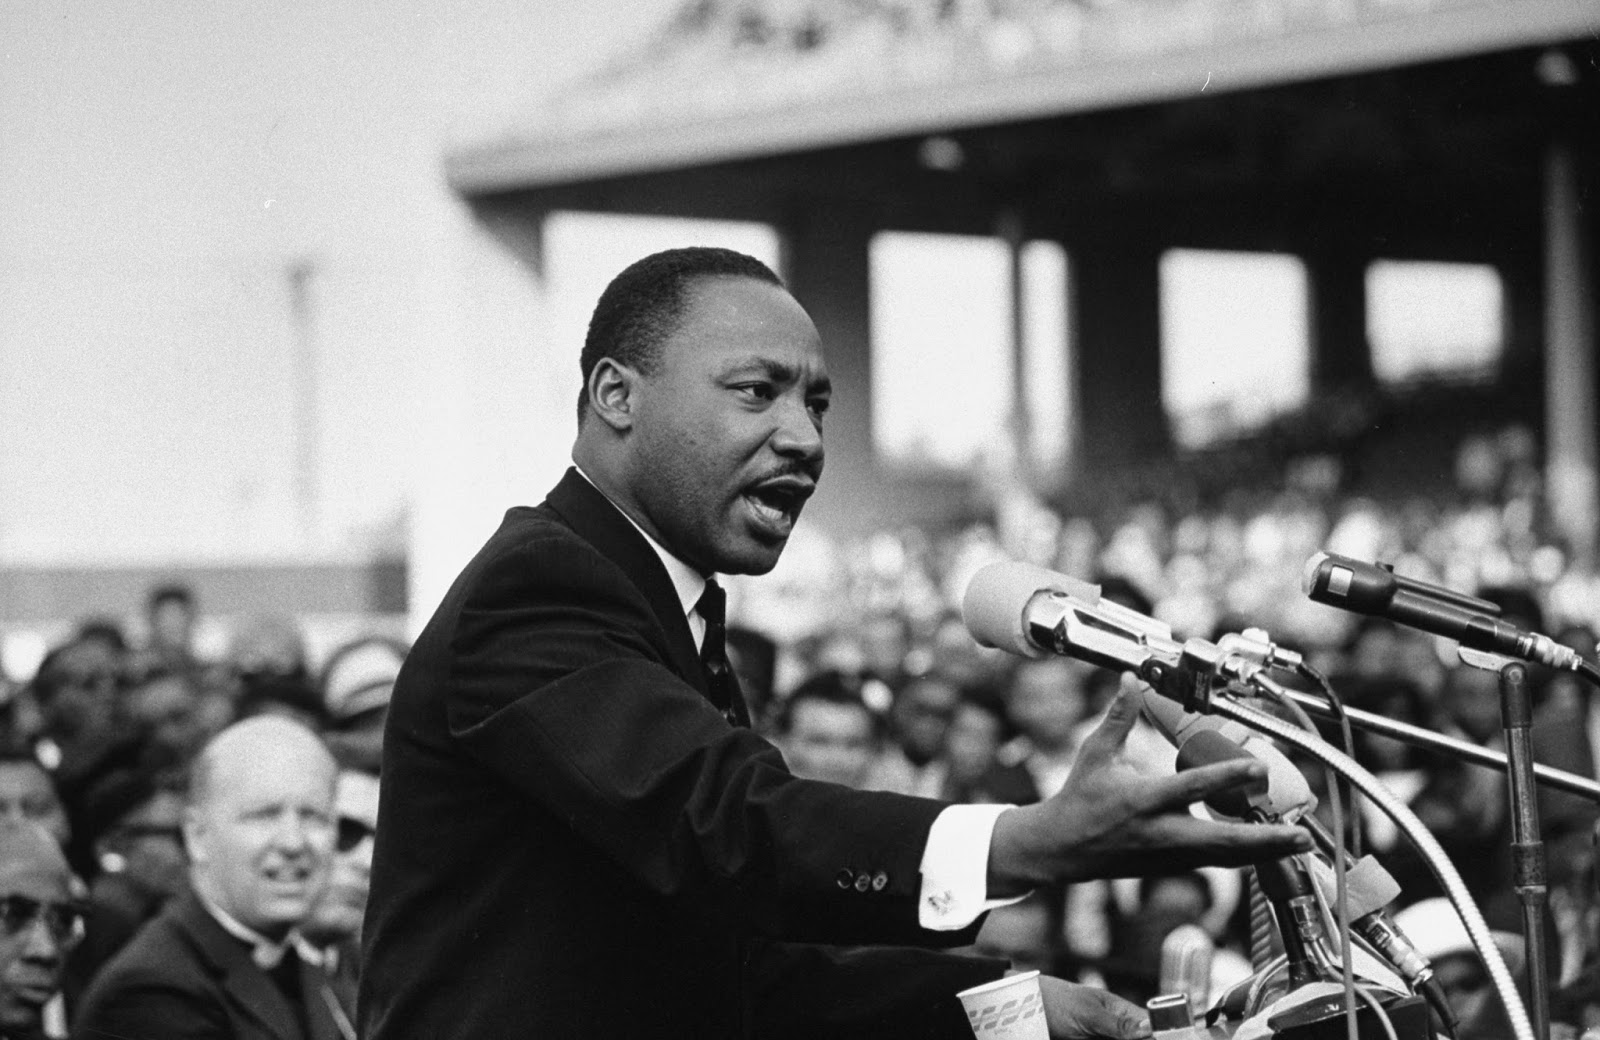 which martin luther king jr quote inspires you the most which martin luther king jr quote inspires you the most